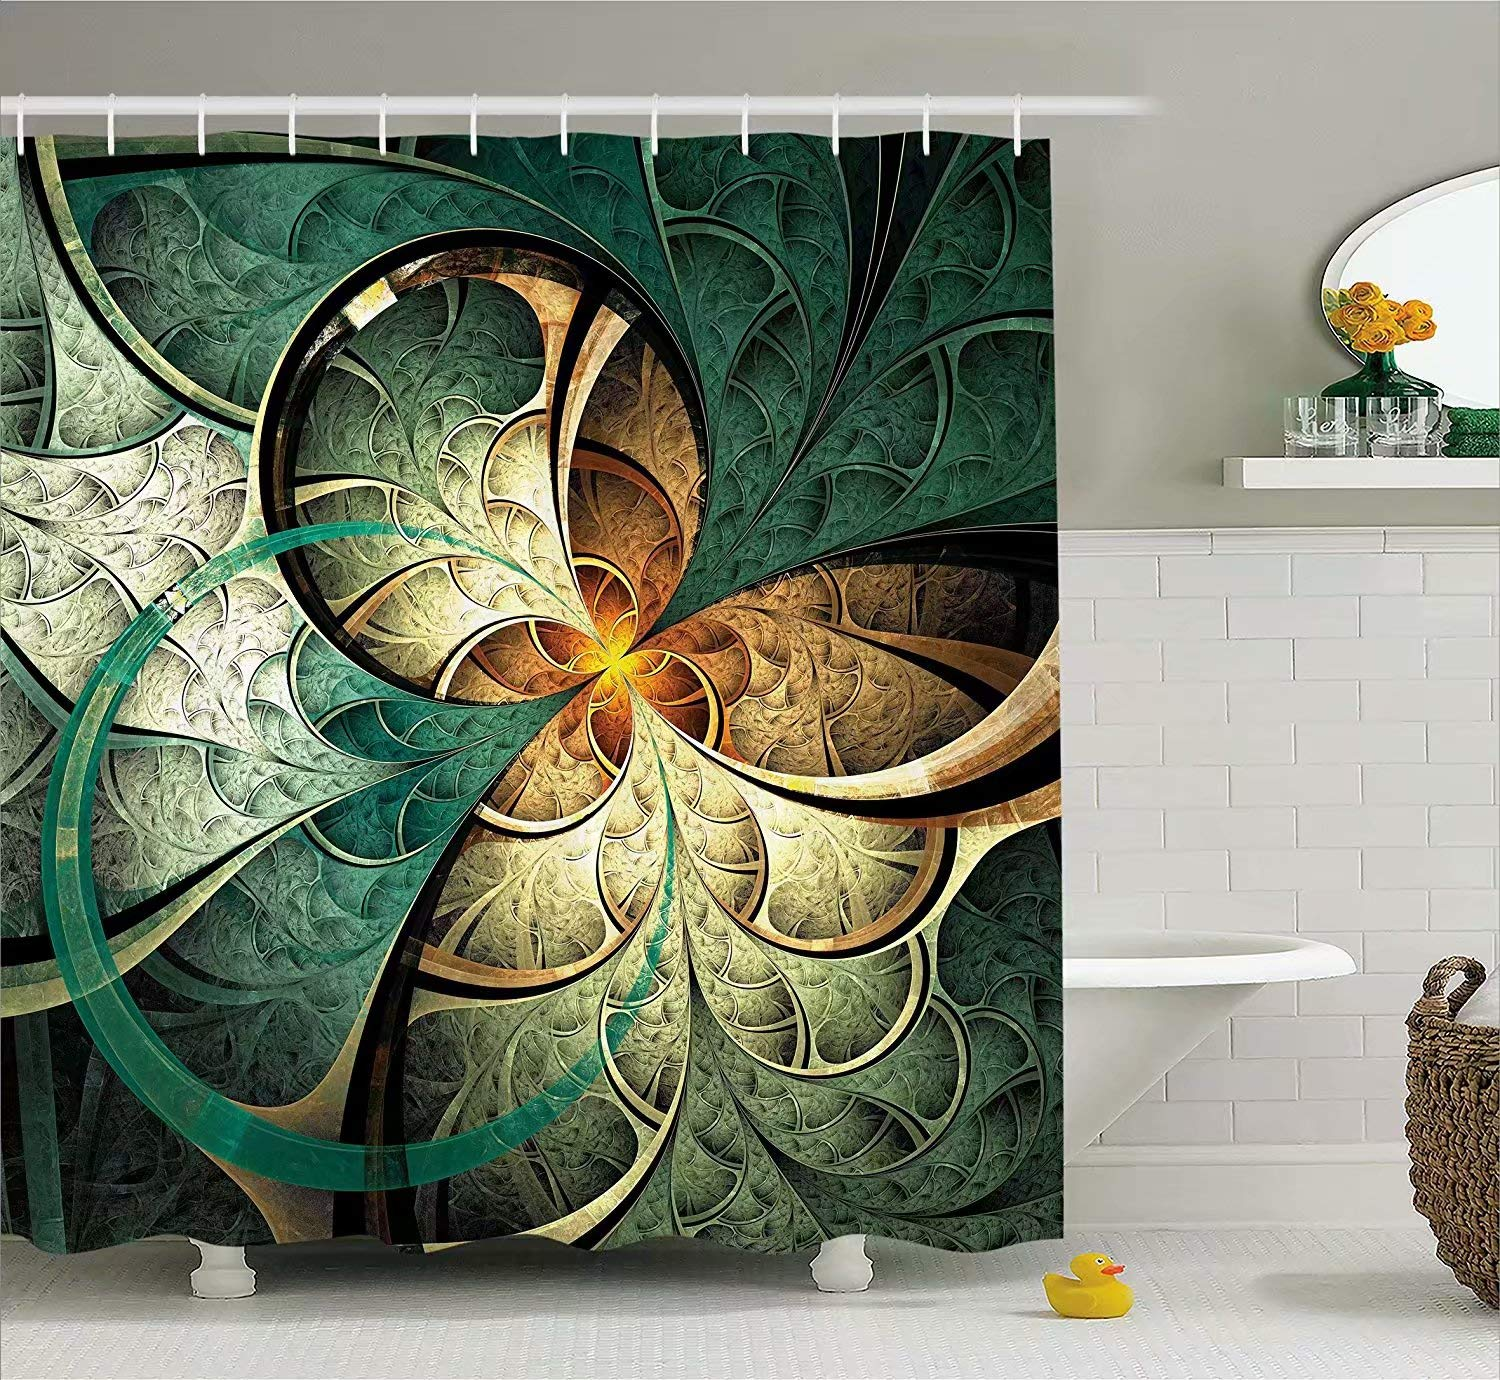 KANATSIU Computer Surreal Flowers Dreamy Imaginary Creative Concept Image Shower Curtain,with 12 plactic hooks,100% Made of Polyester,Mildew Resistant & Machine Washable,Width x Height is 60x72